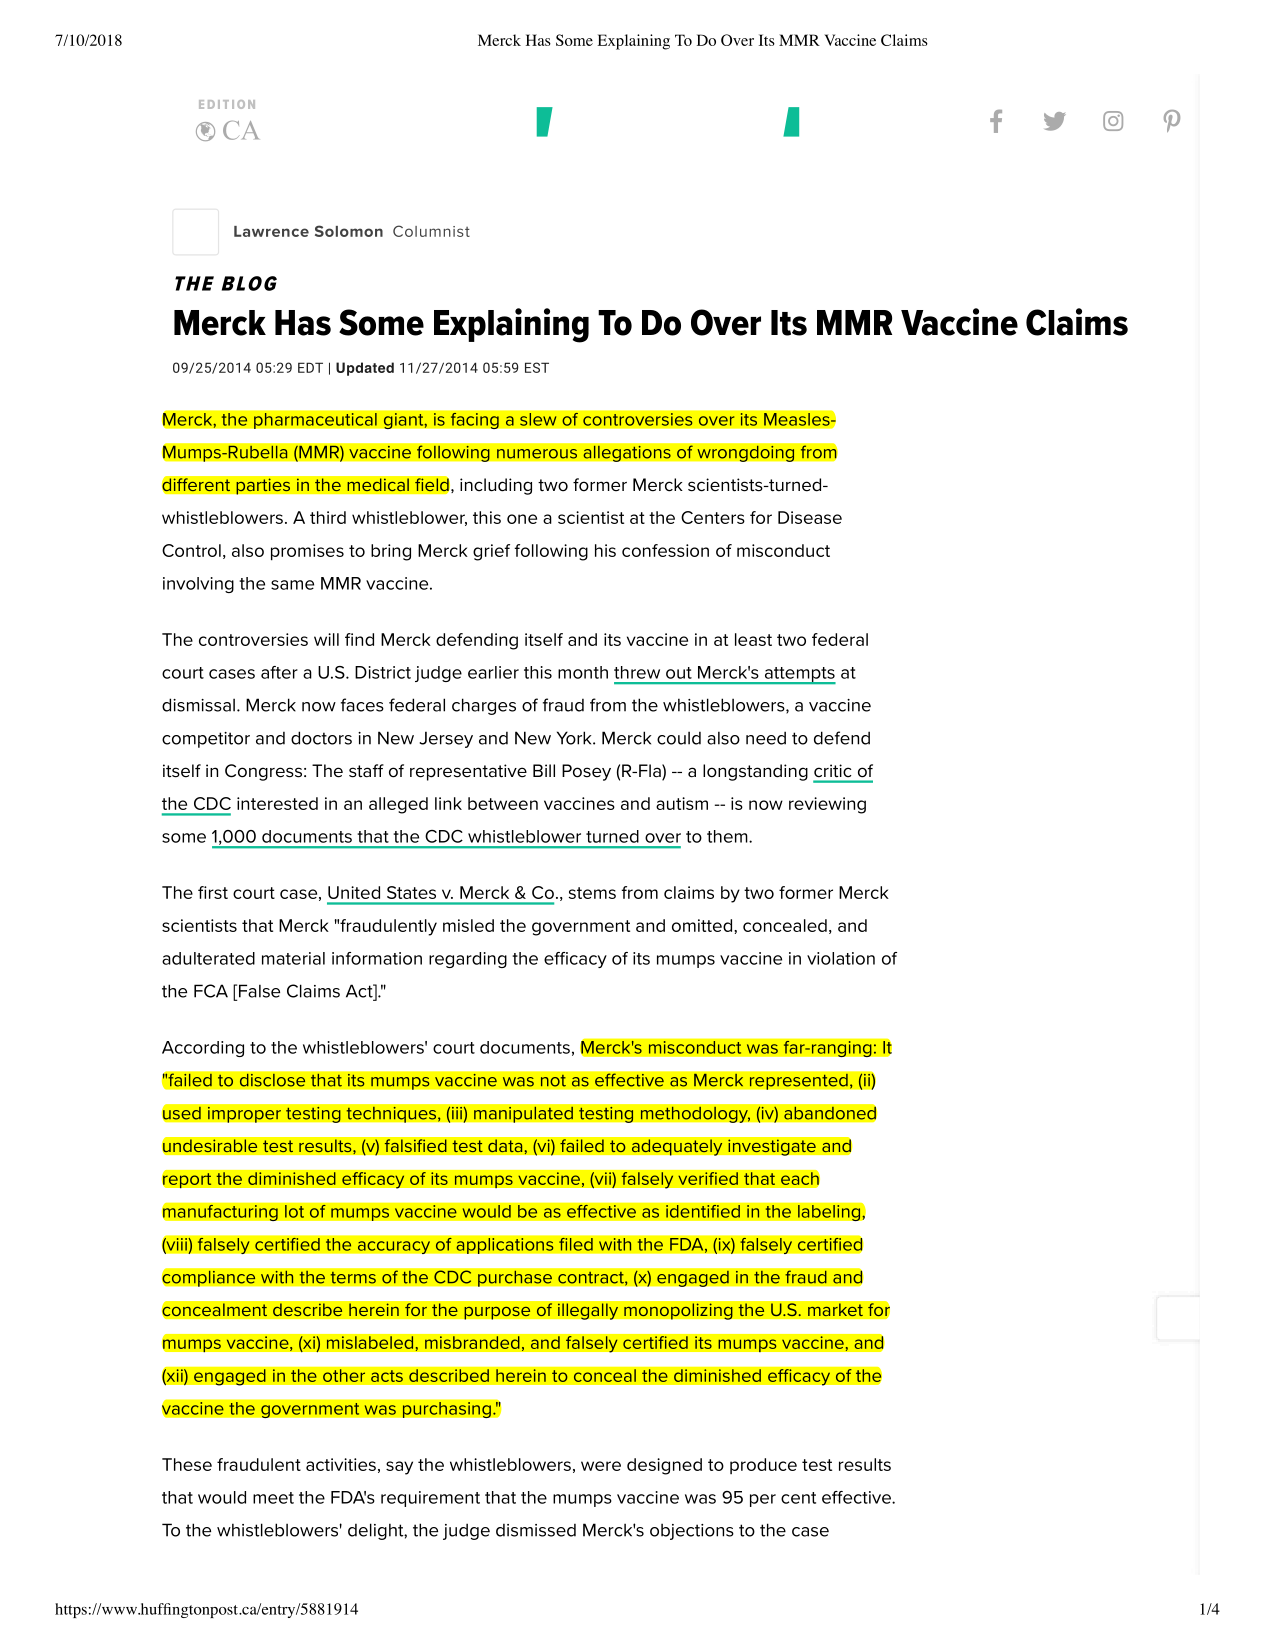 Vaccine Guide - Merck has some explaining to do over its MMR